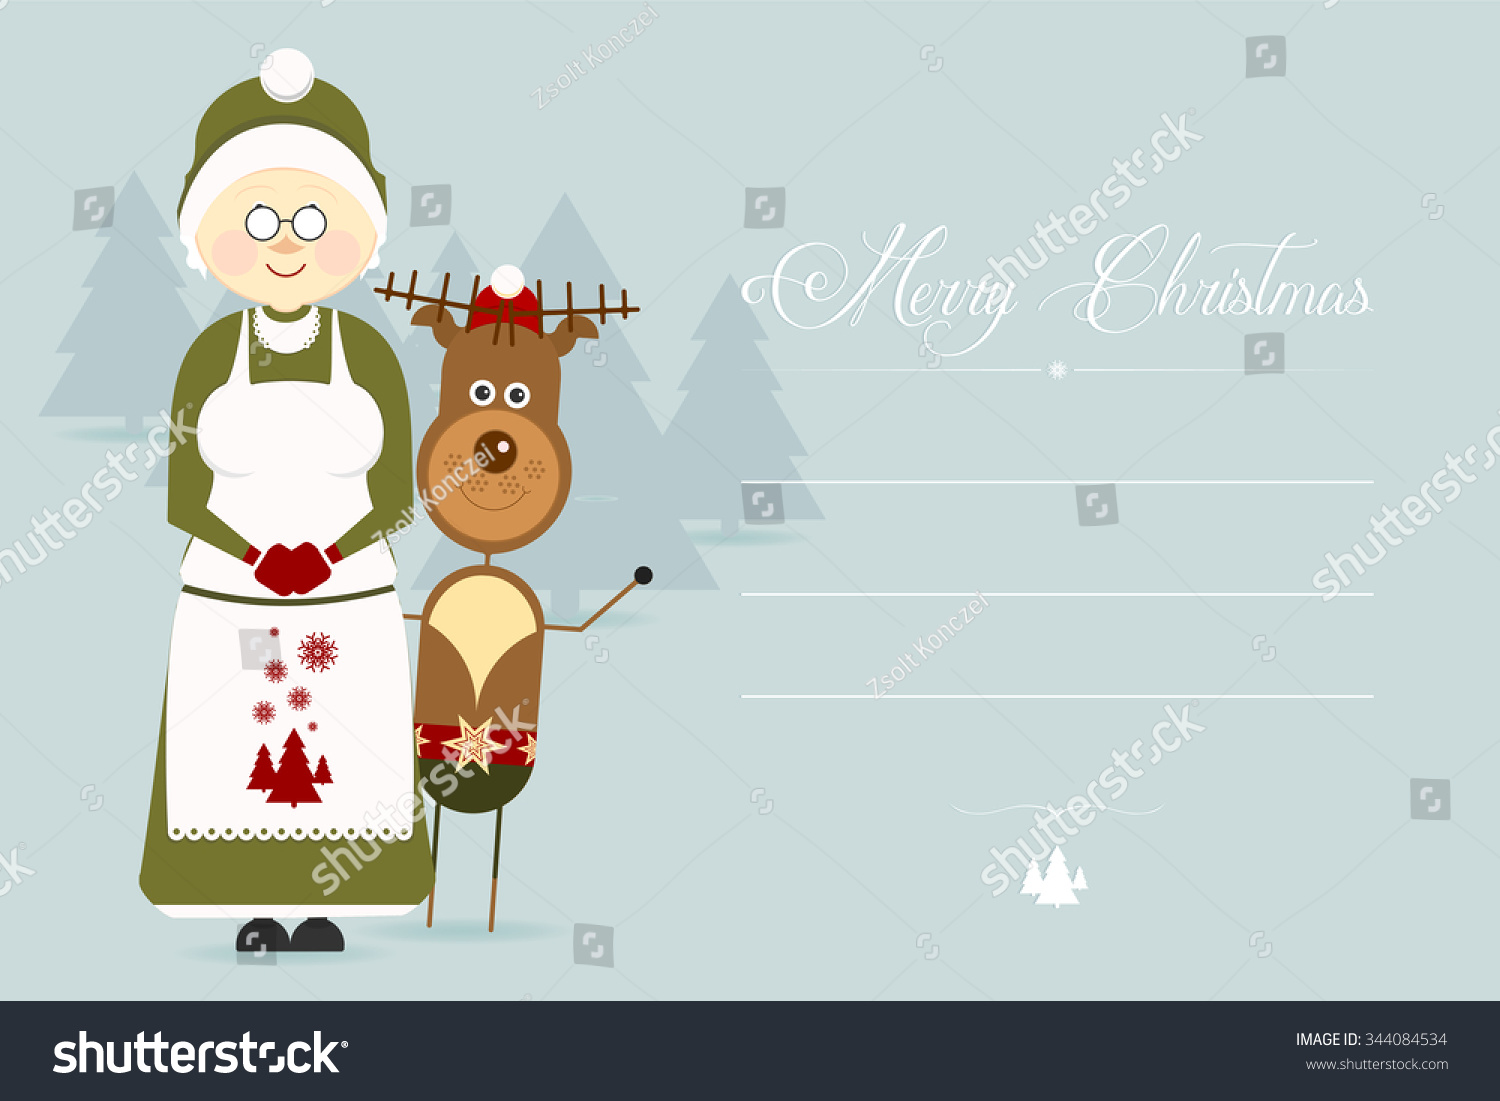 Cute christmas greeting card christmas characters stock vector cute christmas greeting card with christmas characters flat design style kristyandbryce Gallery